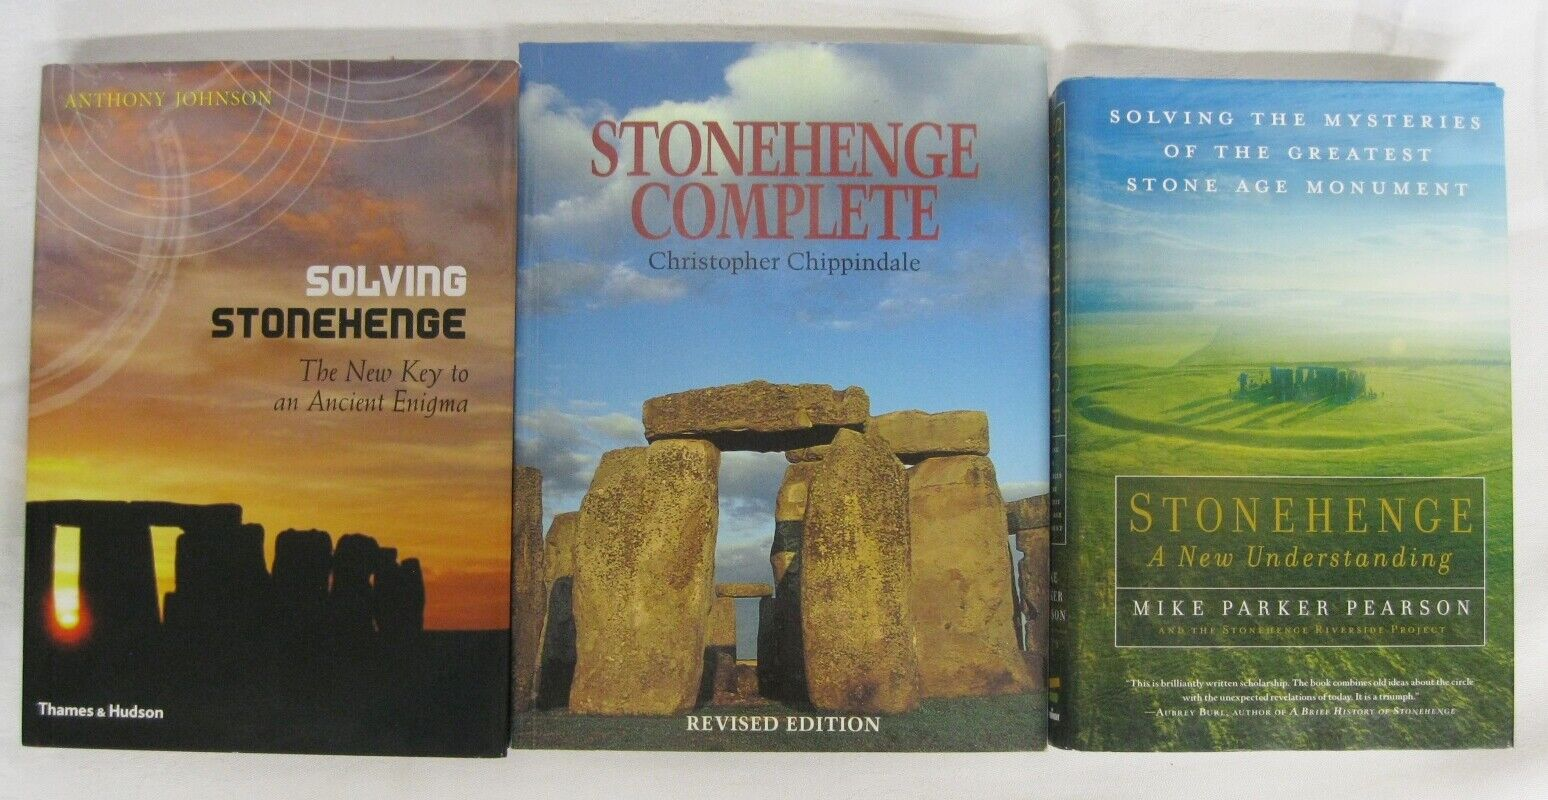 stonehenge a new understanding solving the mysteries of the greatest stone age monument